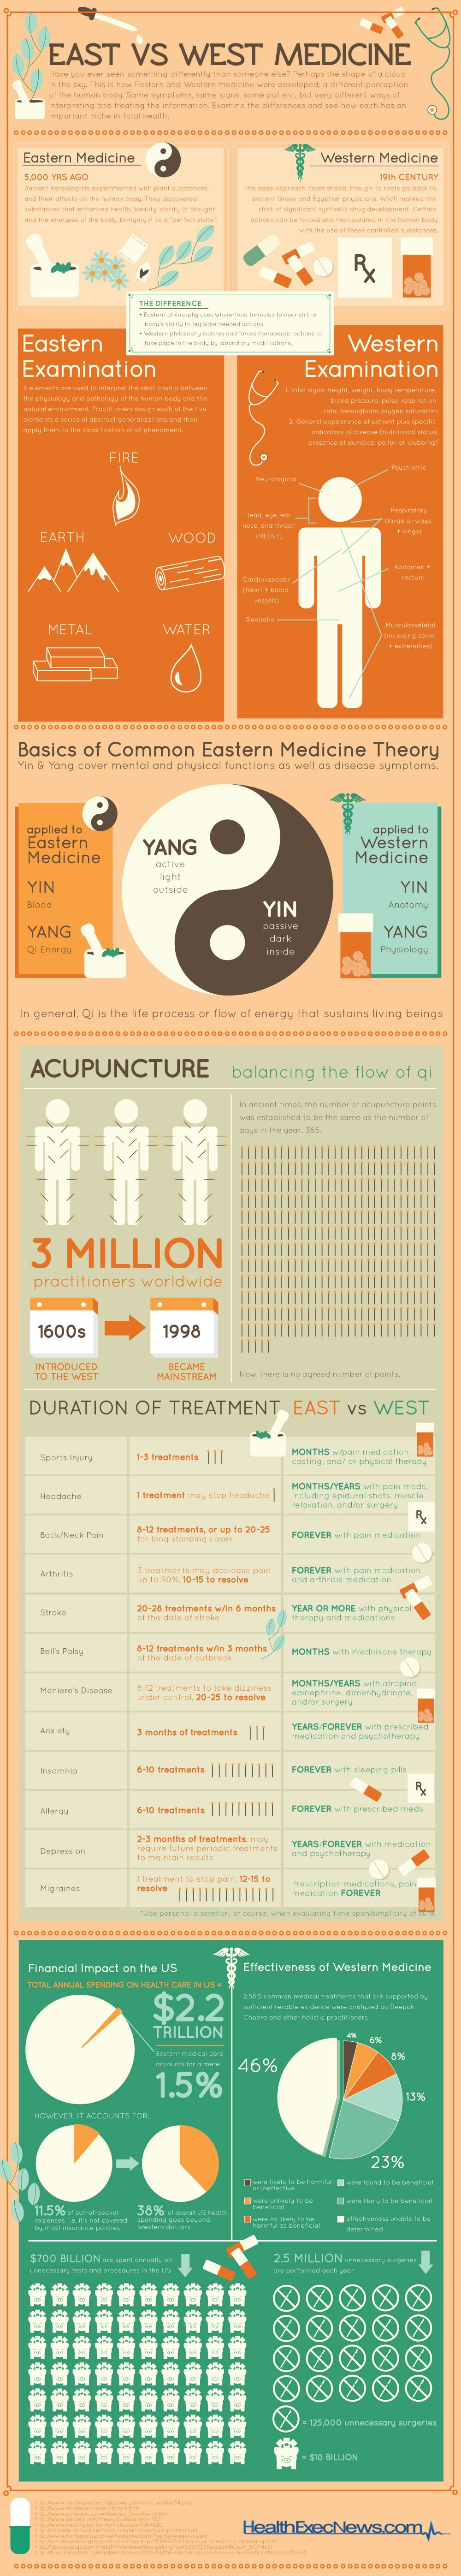 Many are beginning to see the preventative and healing power of ancient practices that originated in the East, such as yoga, acupuncture, Tai Chi, Qi Gong, and Chinese herbology.  The infographic below highlights the many distinctions between the two approaches.ヨガ、鍼、太極拳、気功、中国語ハーブの研究など東洋医学と西洋医学のアプローチの違い。